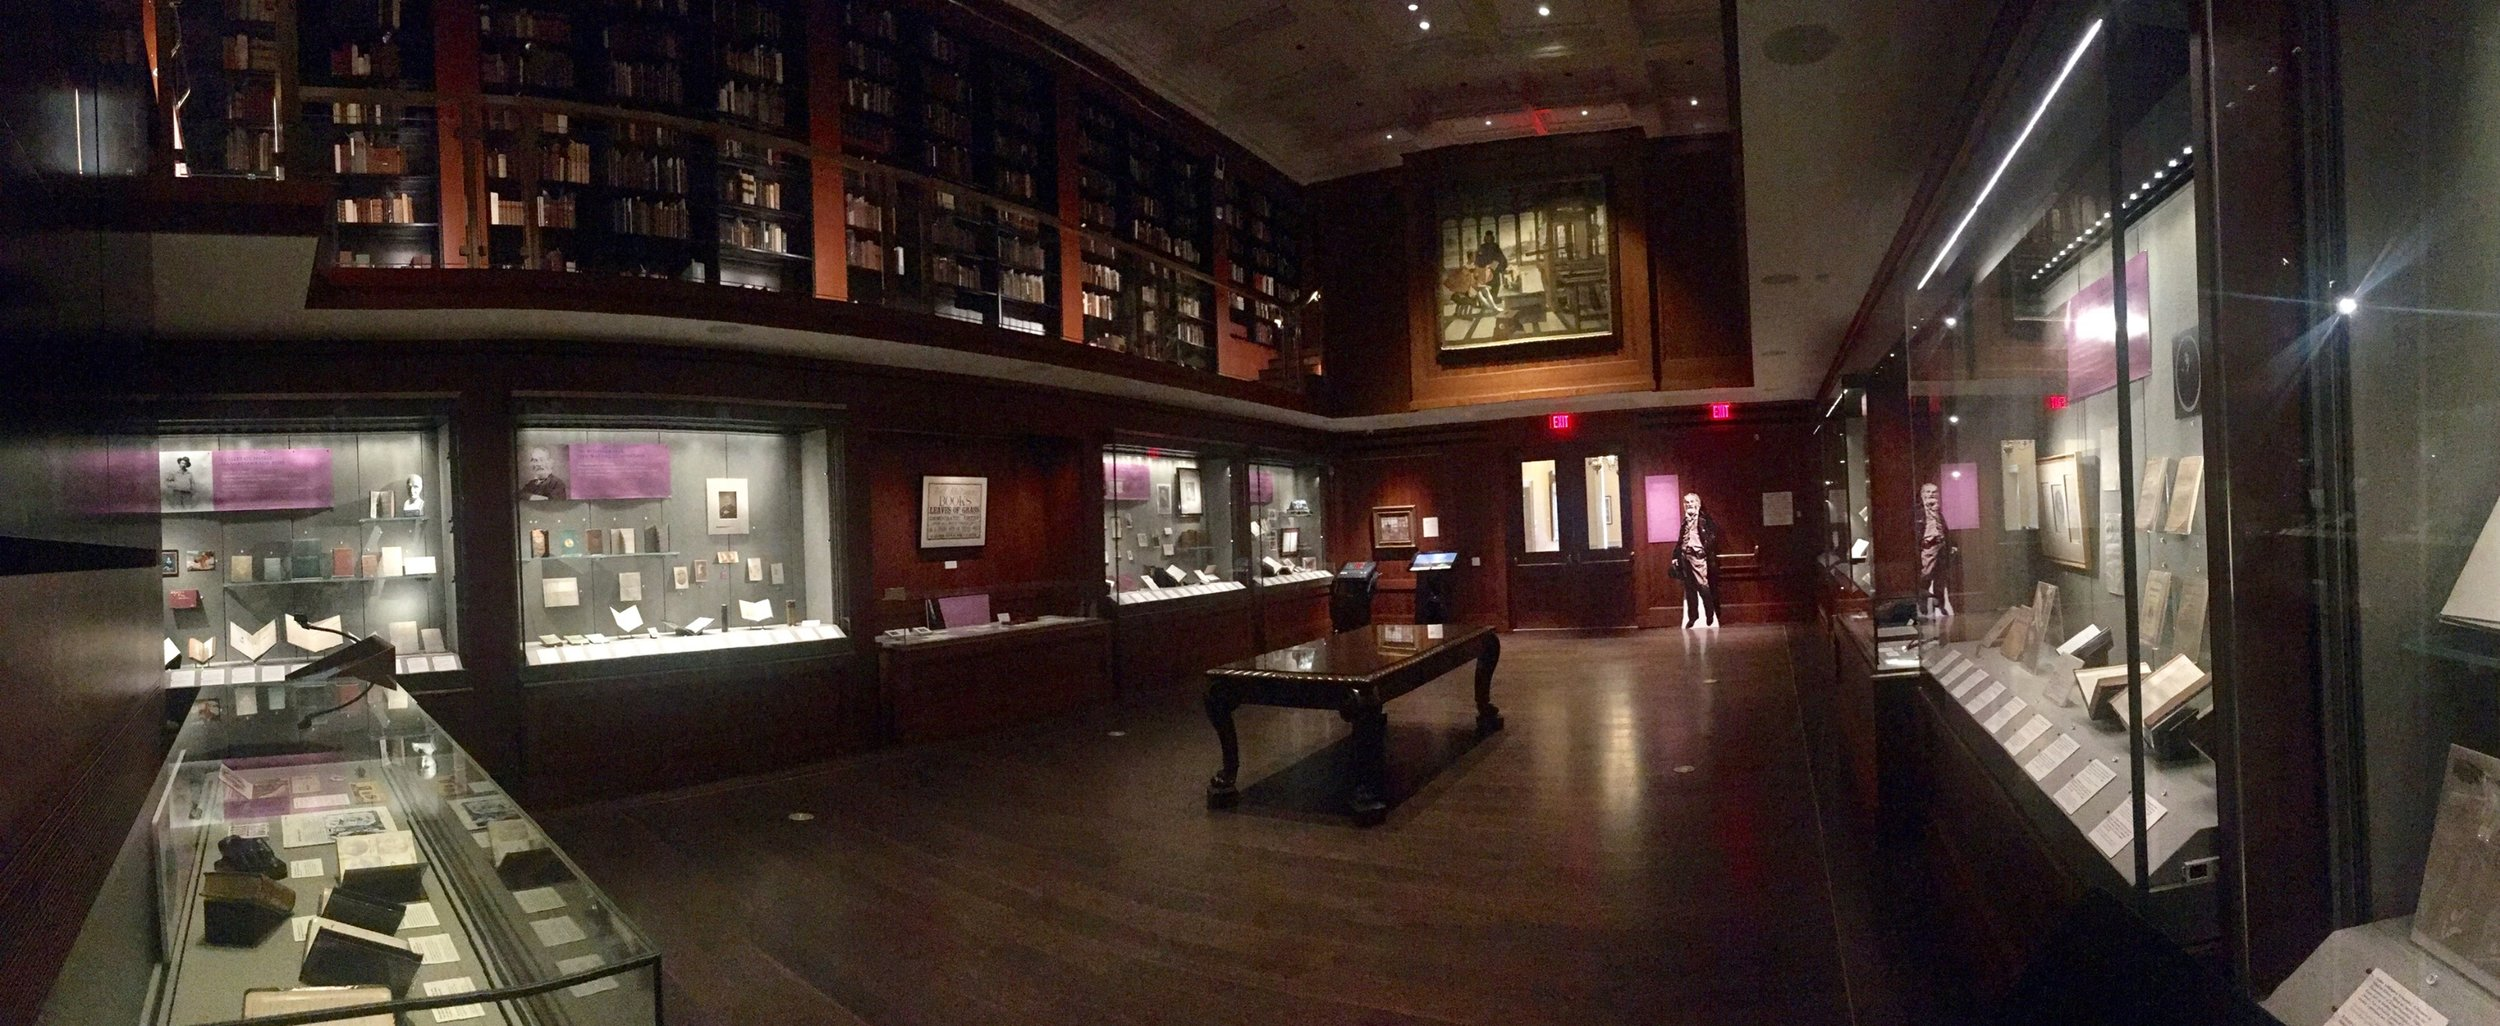 The Grolier Club's exhibition room in New York